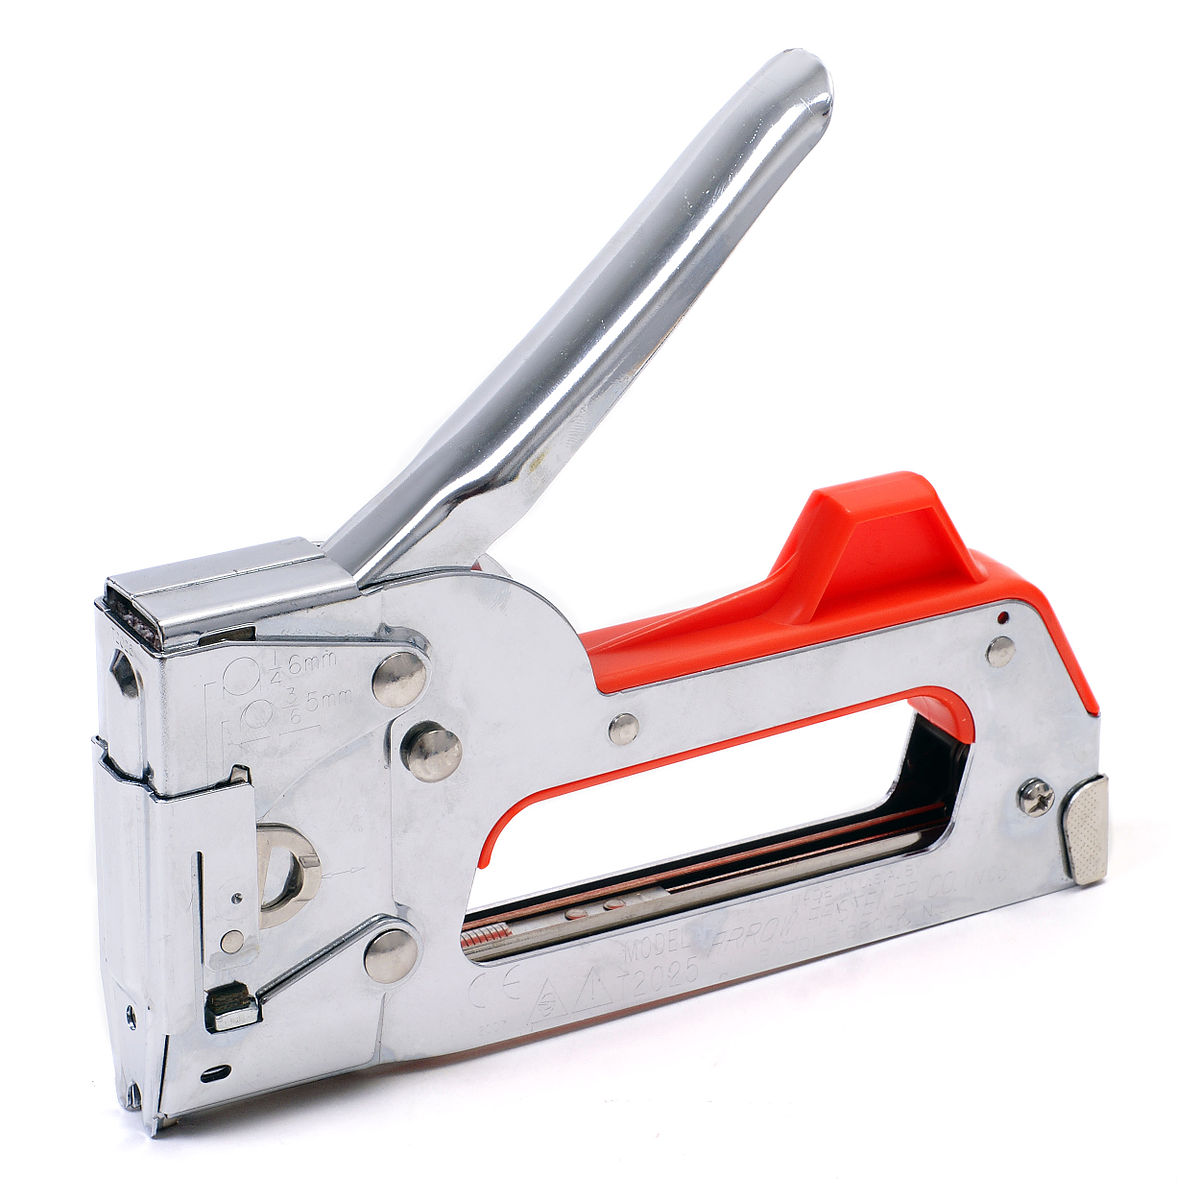 Staple gun - Wikipedia